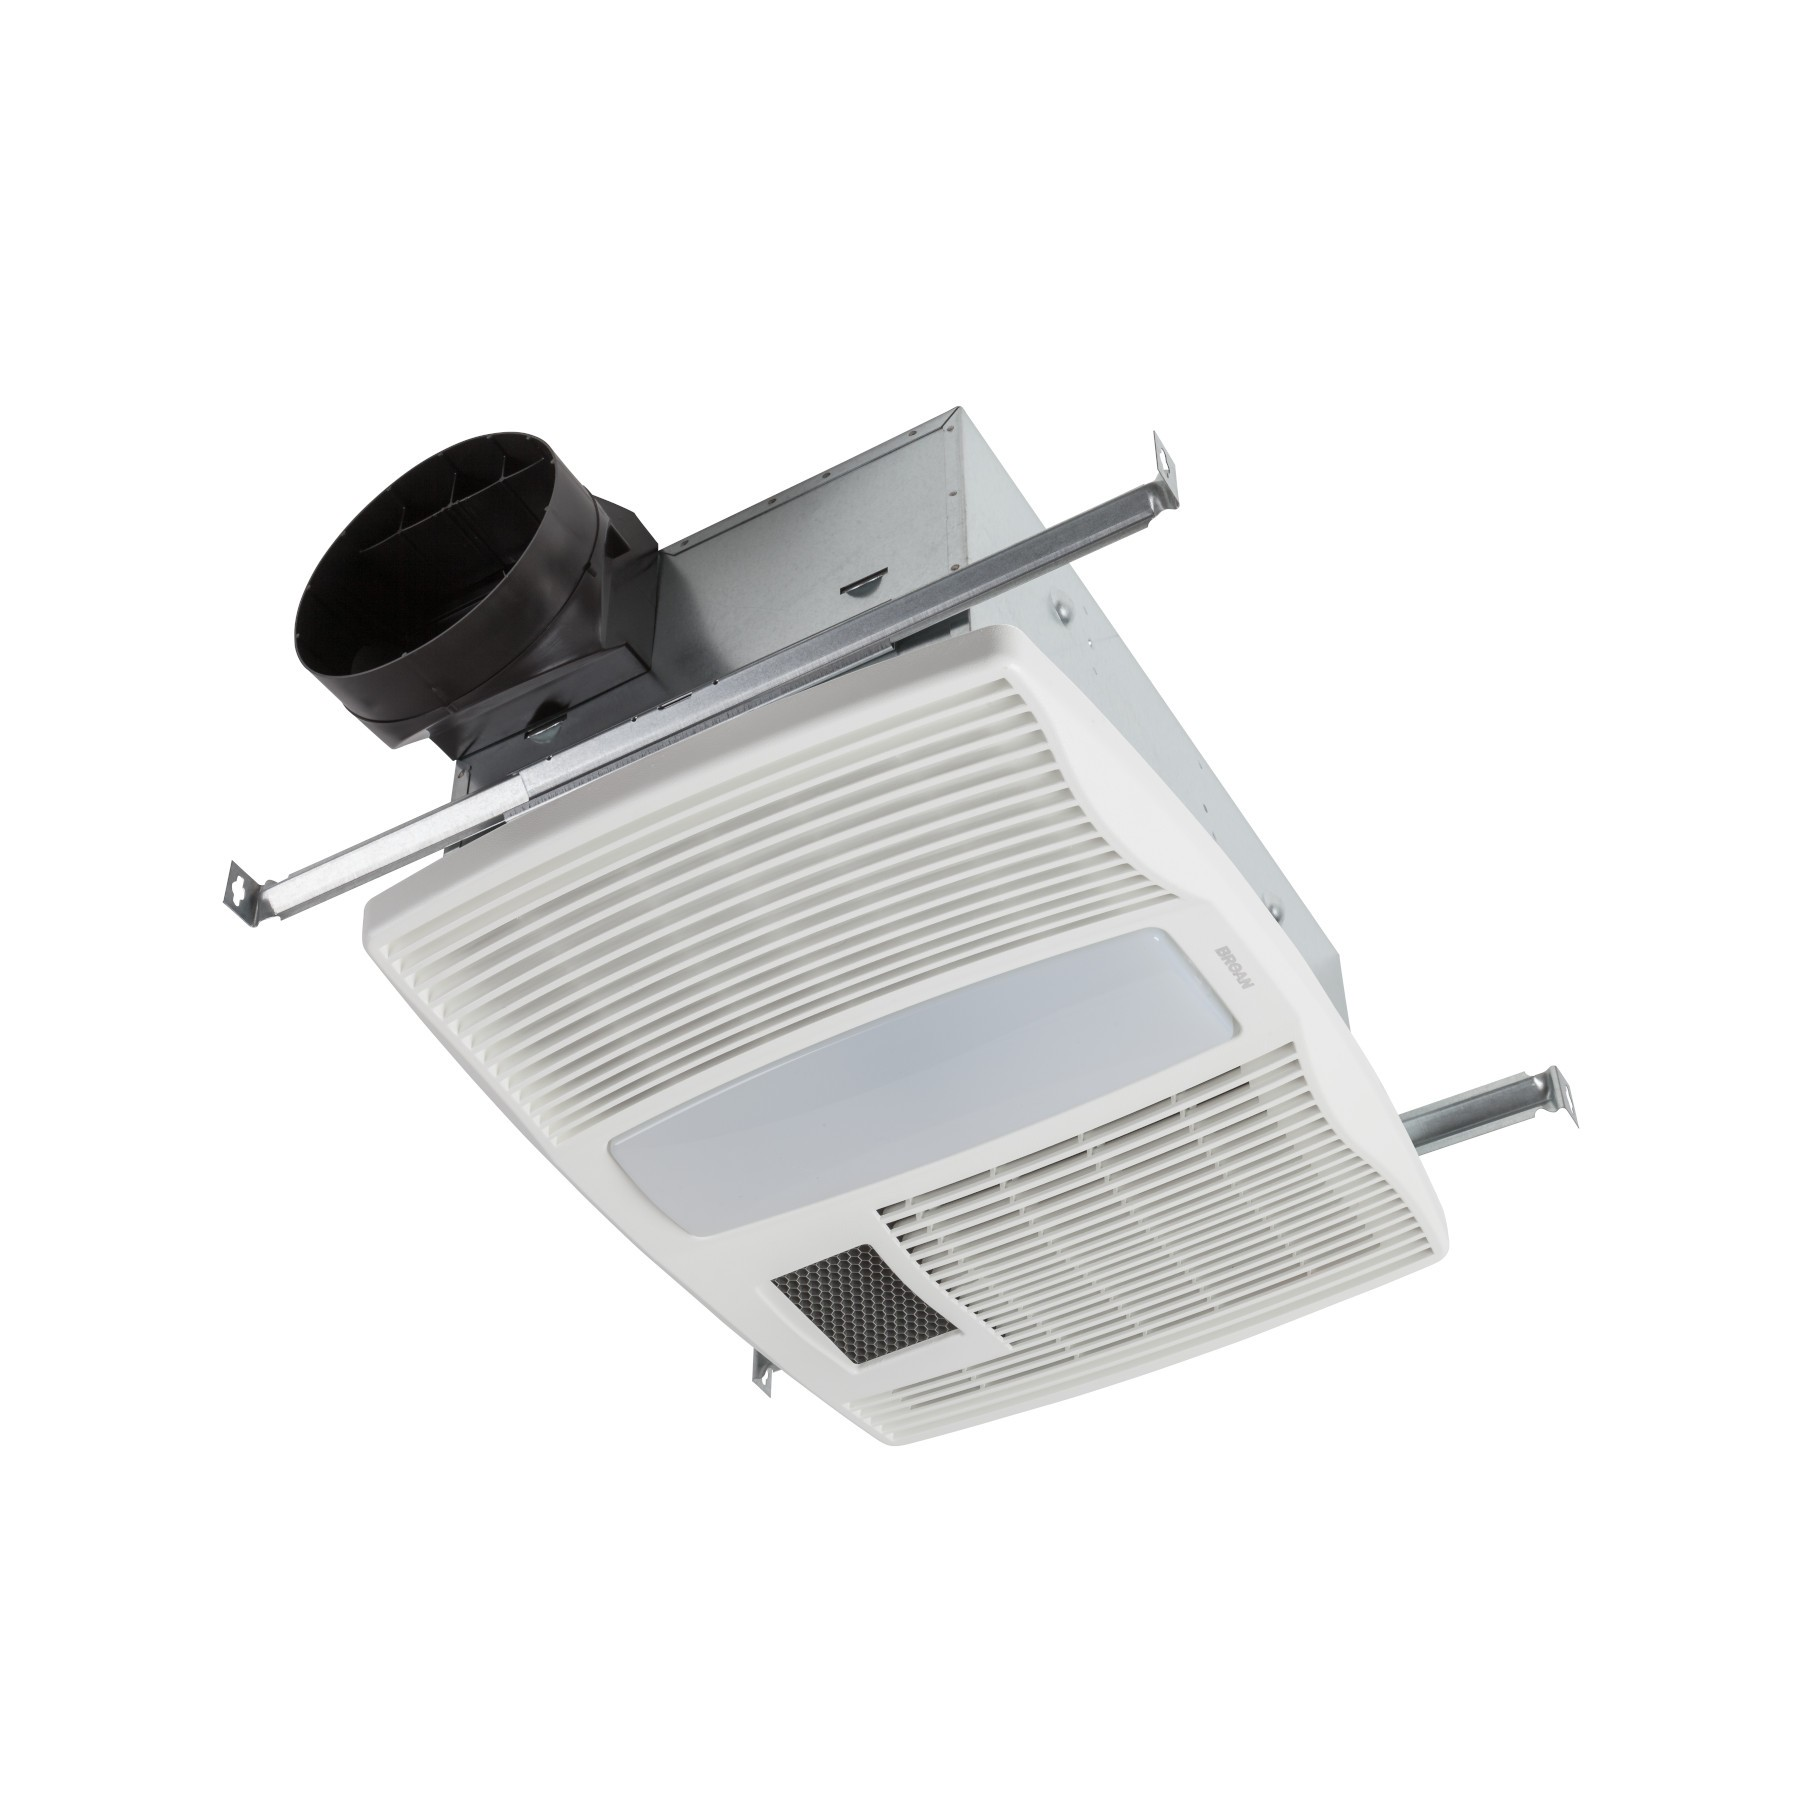 Broan Nutone 110cfm Ventilation Fan With Heater And